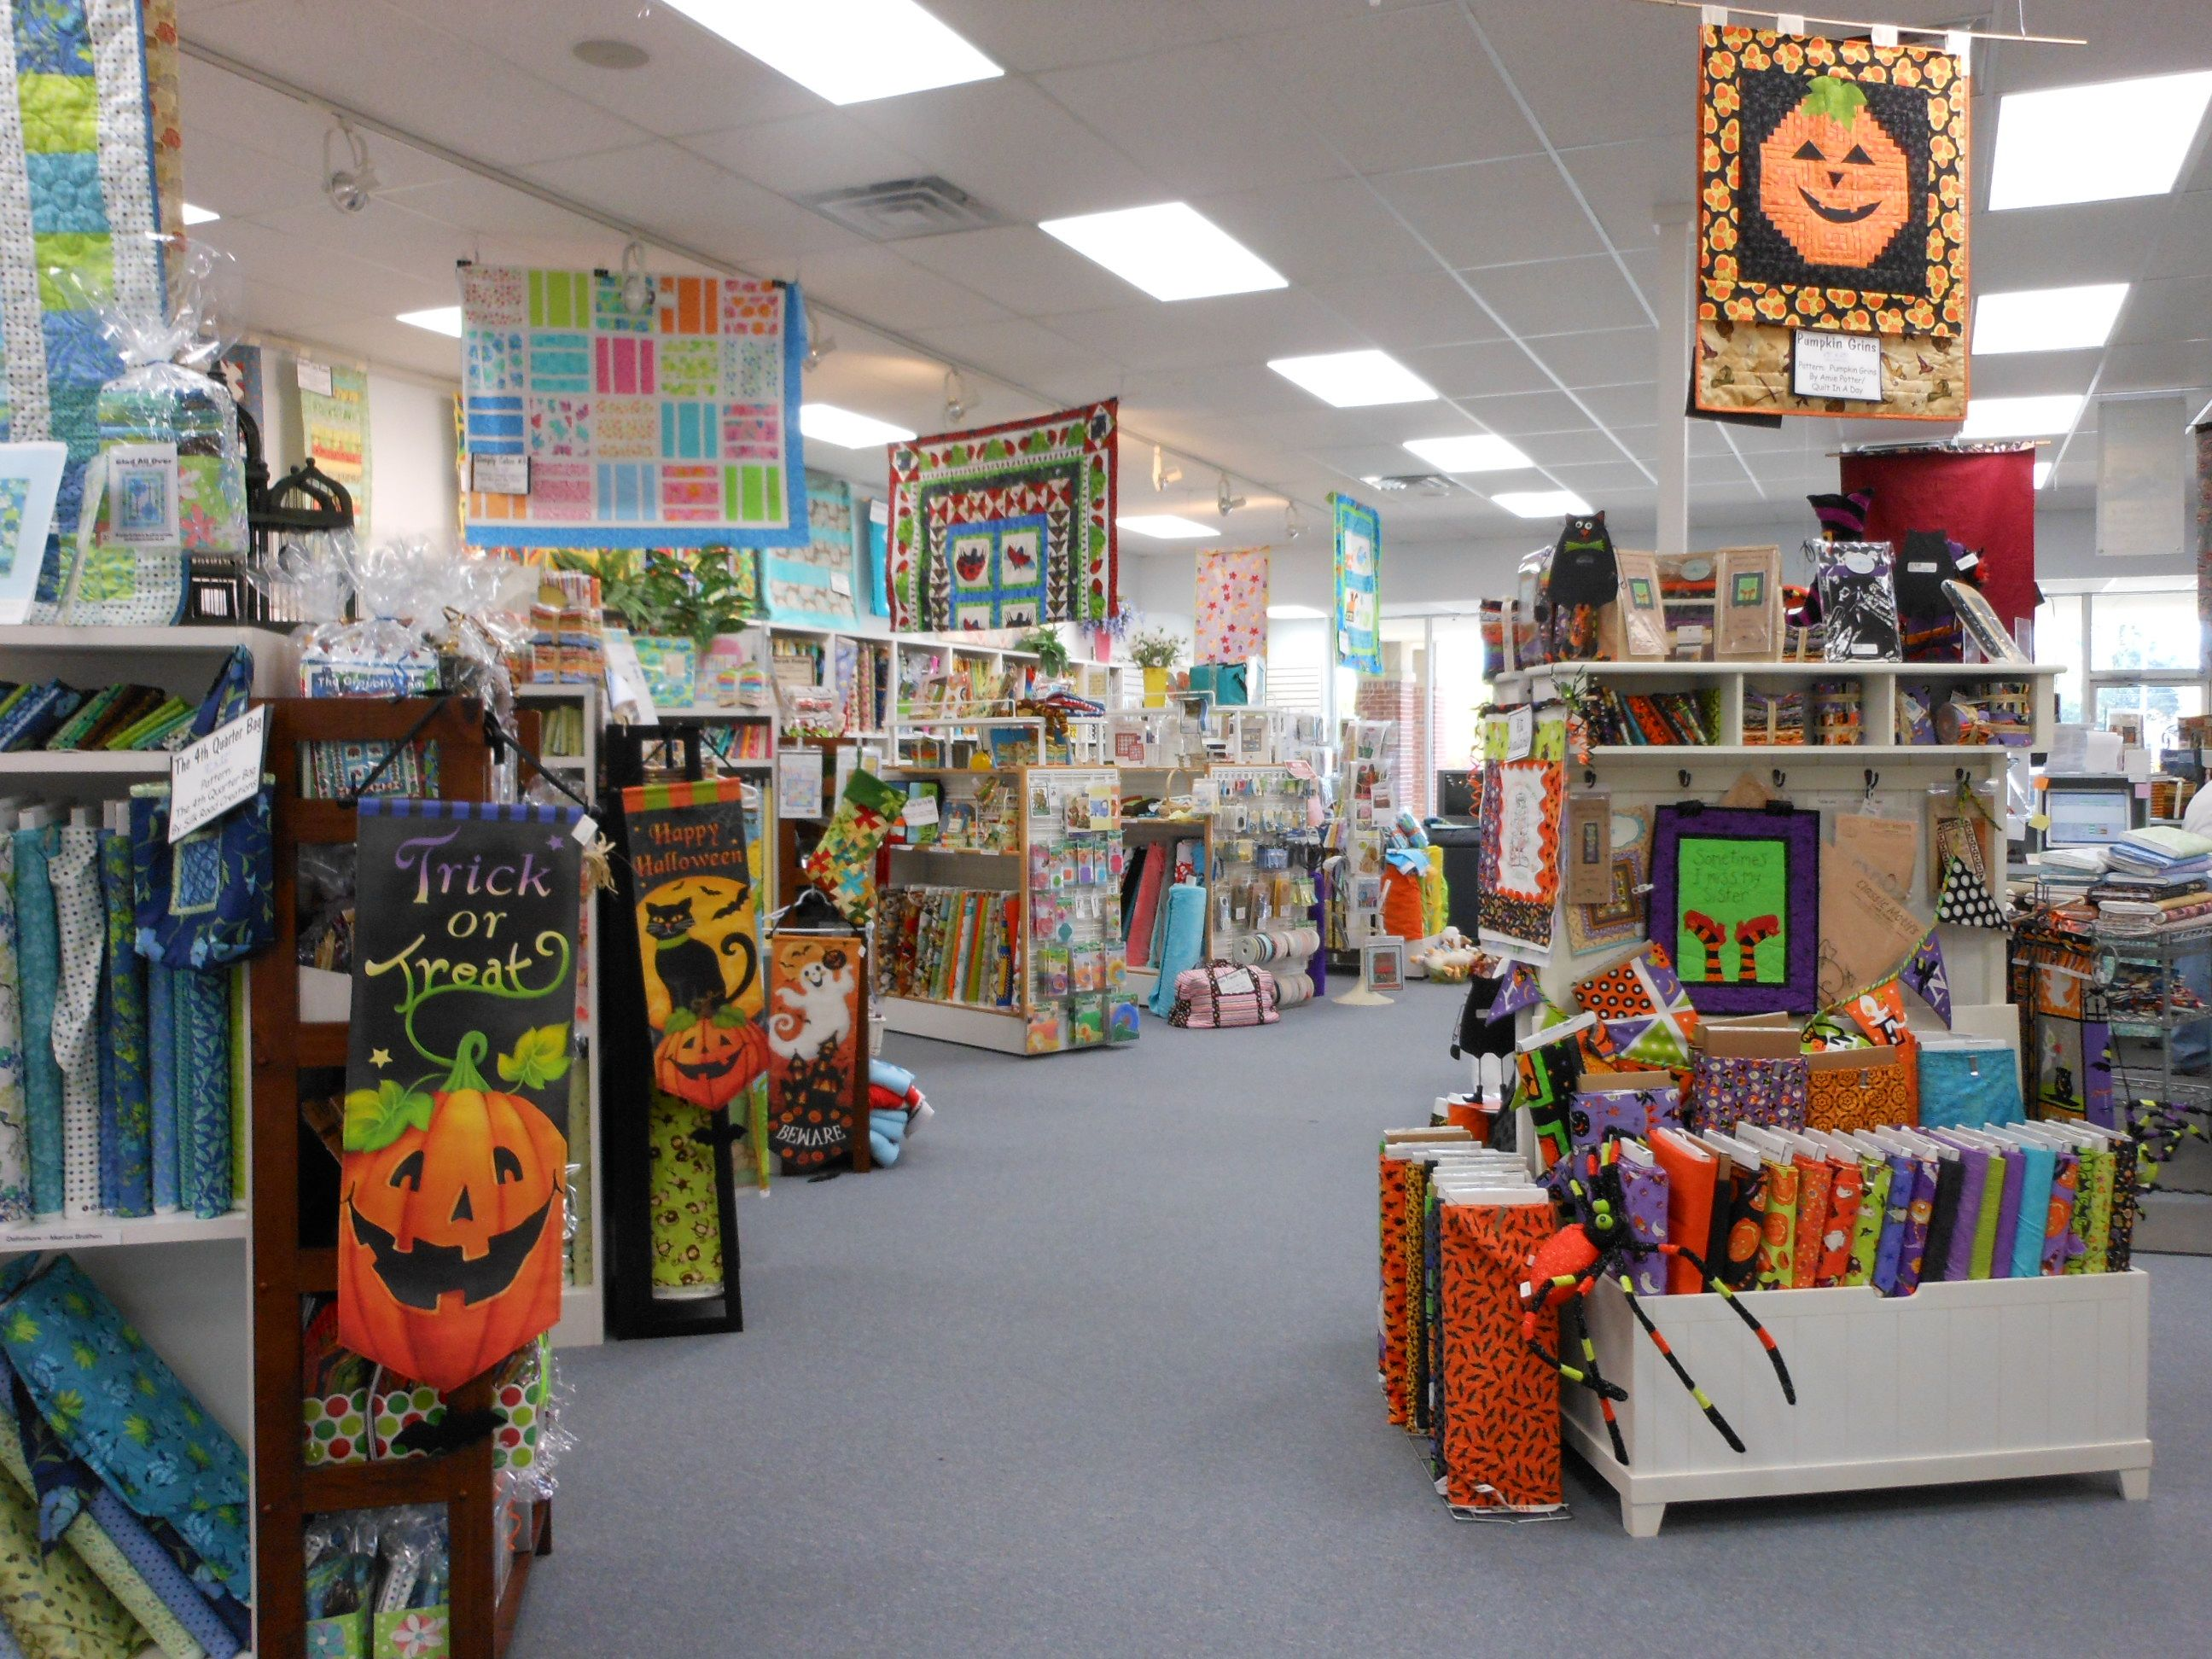 setting up a quilt store - Google Search   Quilt Shoppe ... : quilt shop search - Adamdwight.com